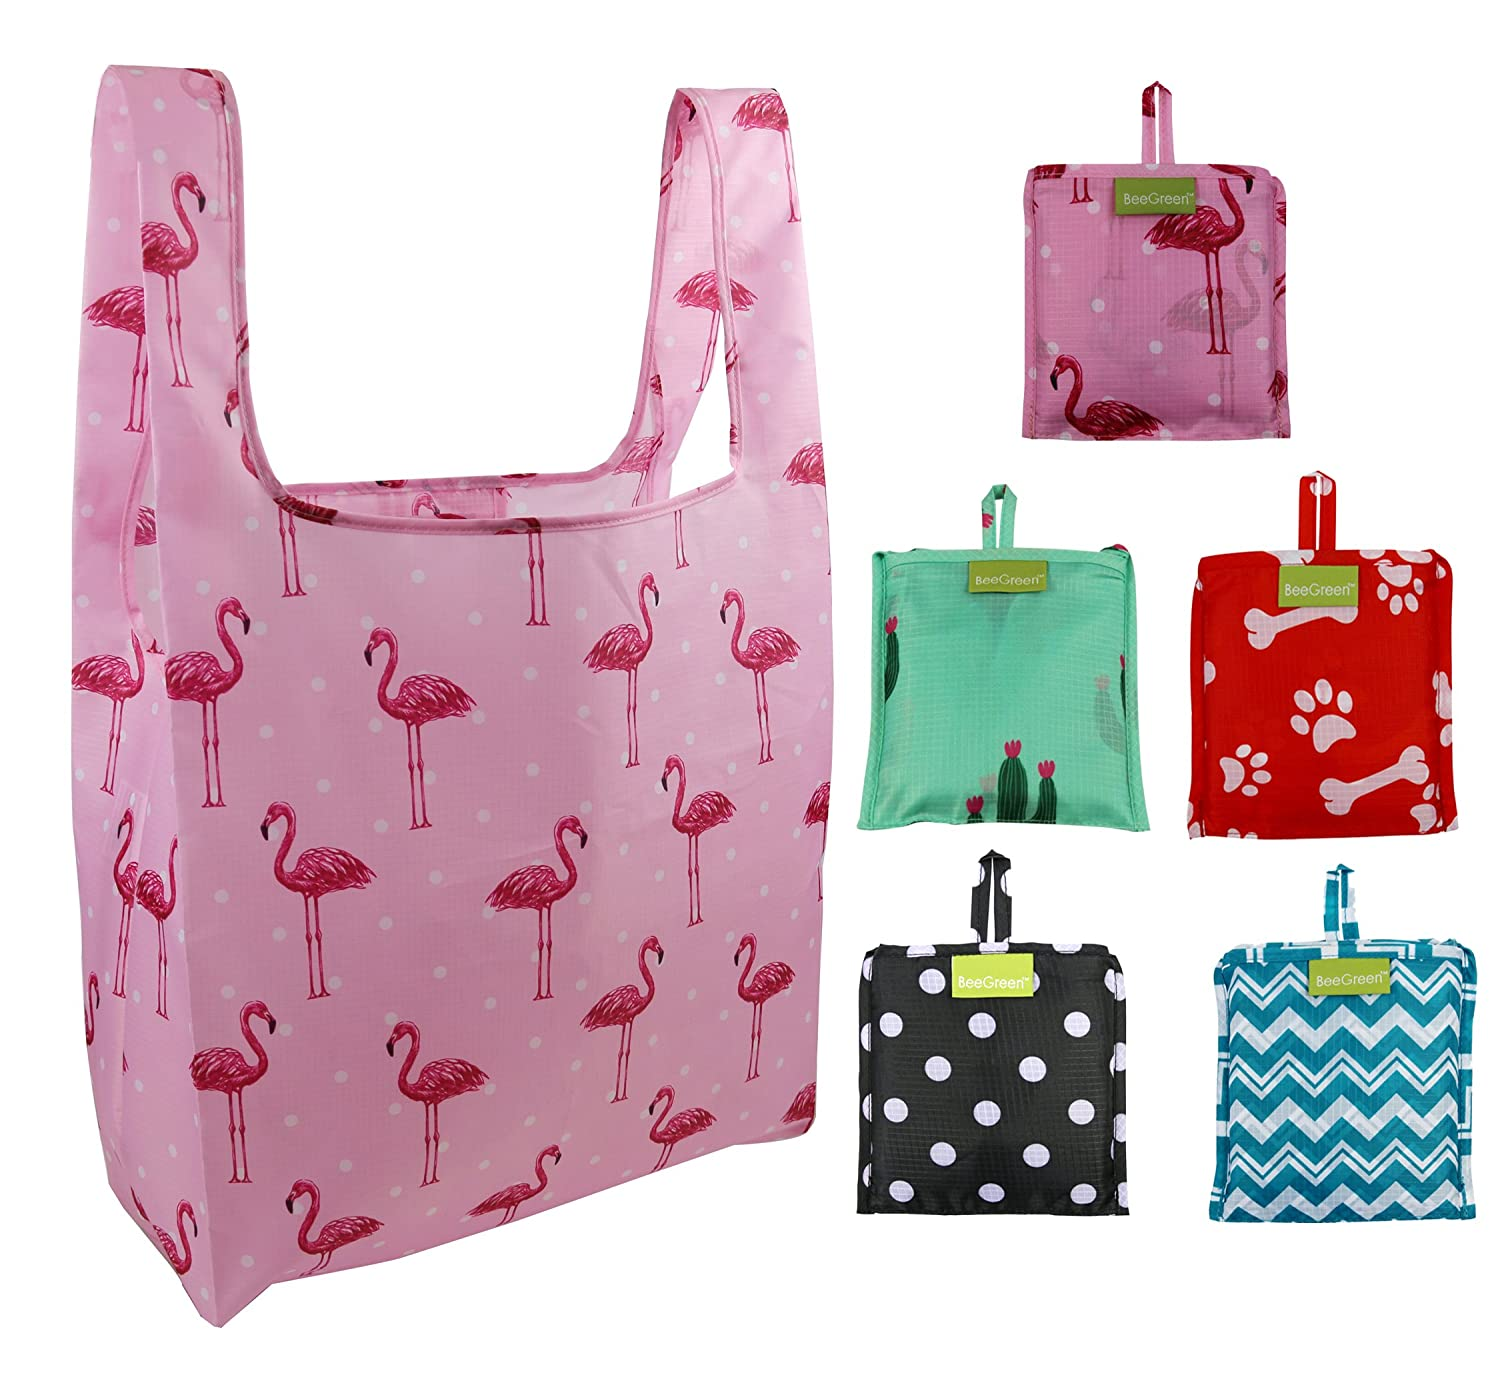 ce4b6b150f13 Foldable Reusable Grocery Bags Bulk 5 Cute Designs Folding Shopping Tote Bag  Fits in Pocket Eco Friendly Ripstop Nylon Waterproof and Machine Washable  Cloth ...